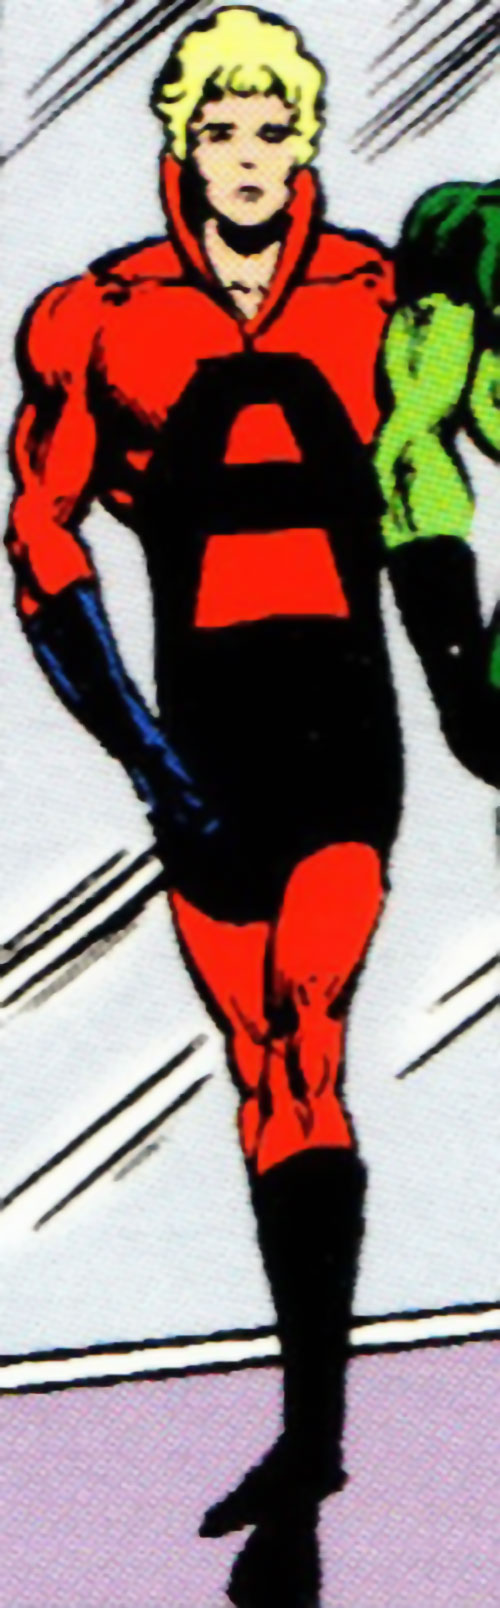 Absorbancy Boy (Legion of Super-Heroes character) (DC Comics) in the red and black costume